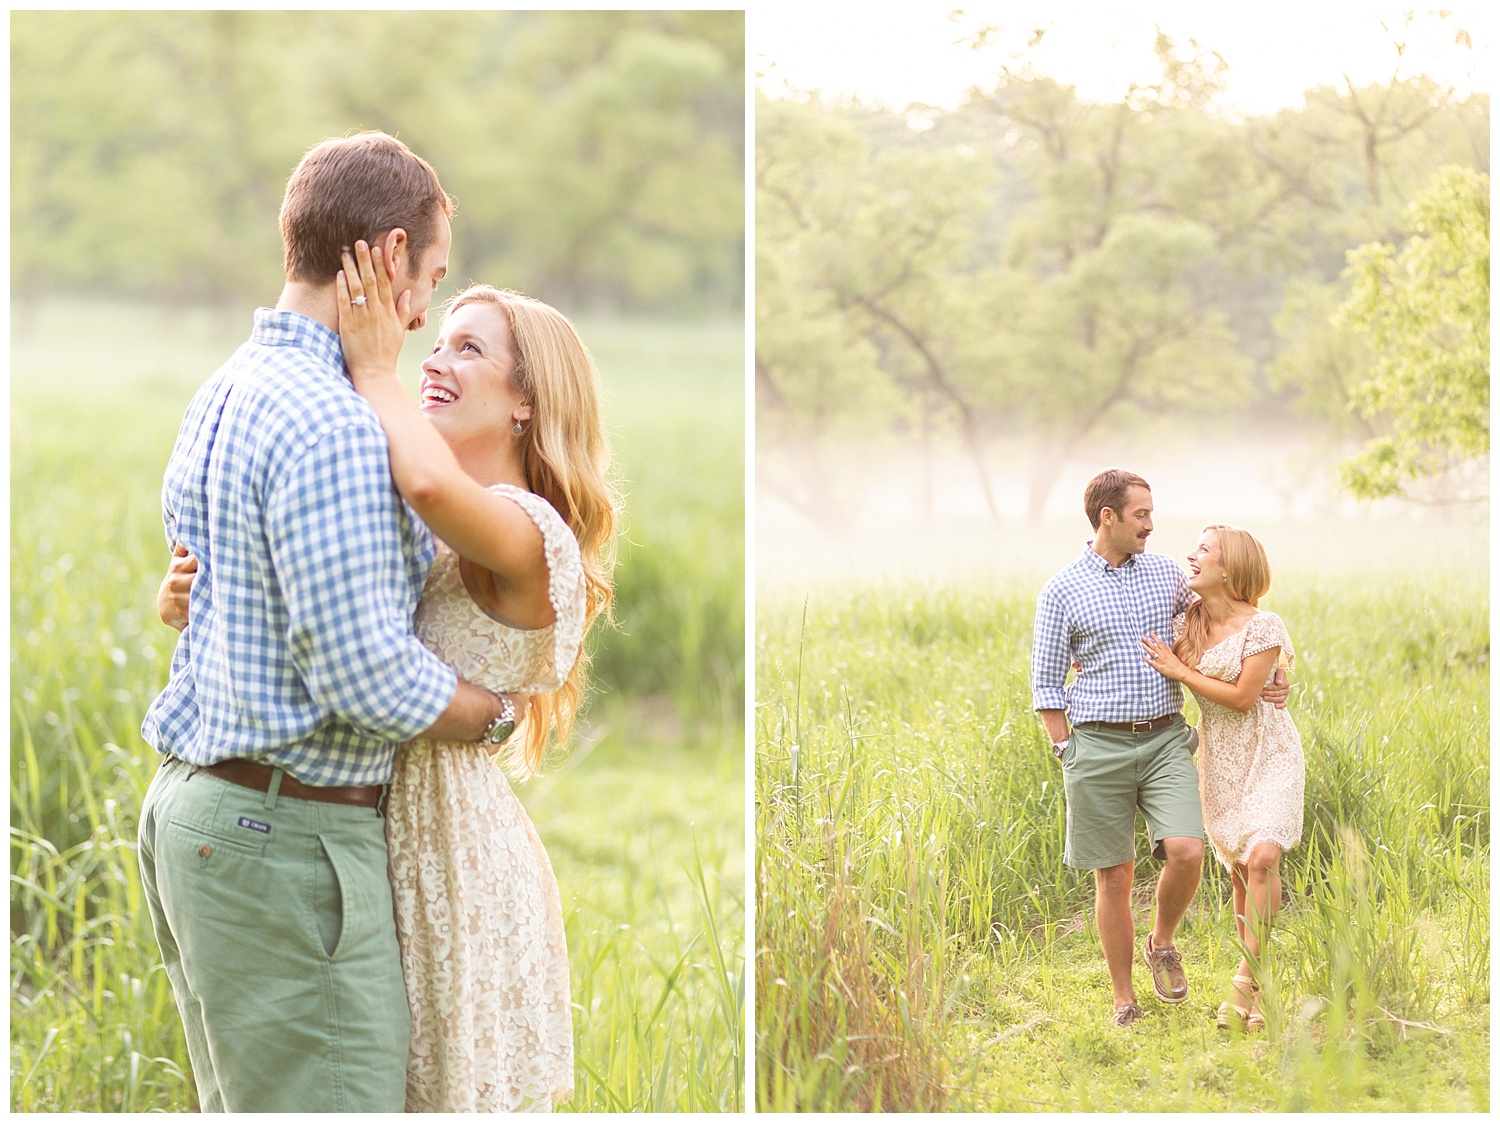 emily-belson-photography-spring-maryland-engagement-03.jpg